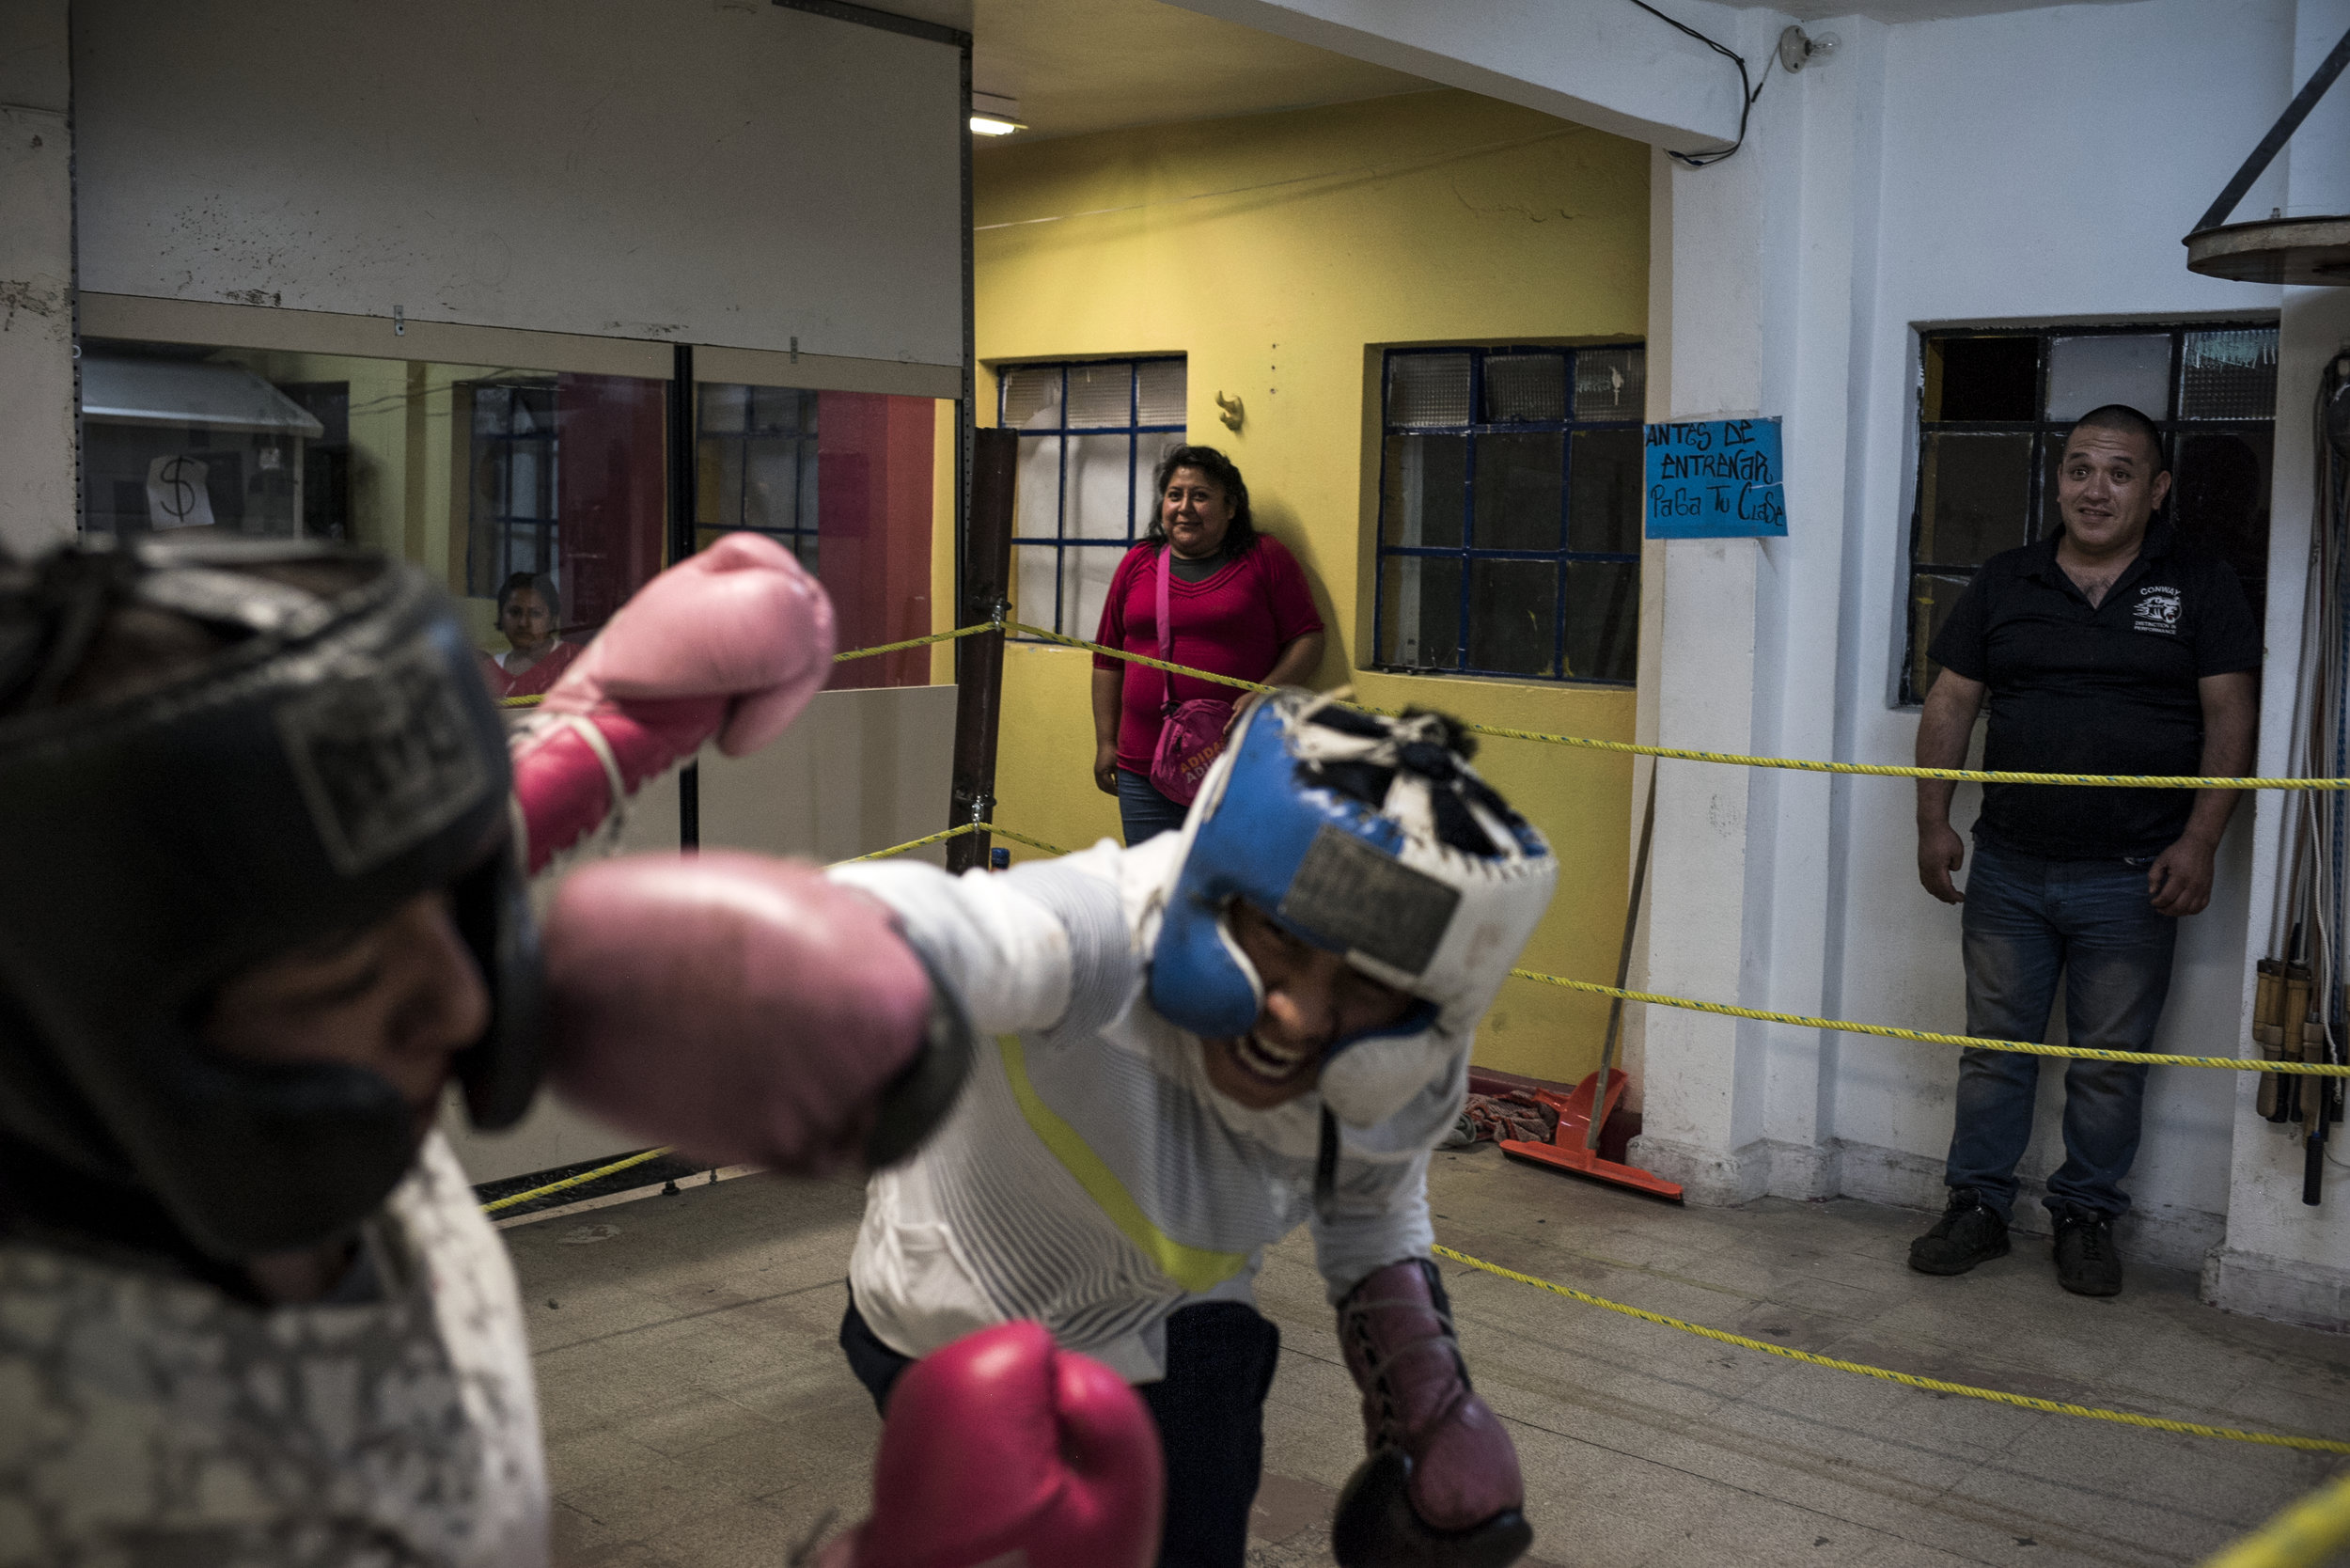 Pancho has been boxing for only four months but he's good. He's fought four times against other kids and has won them all.